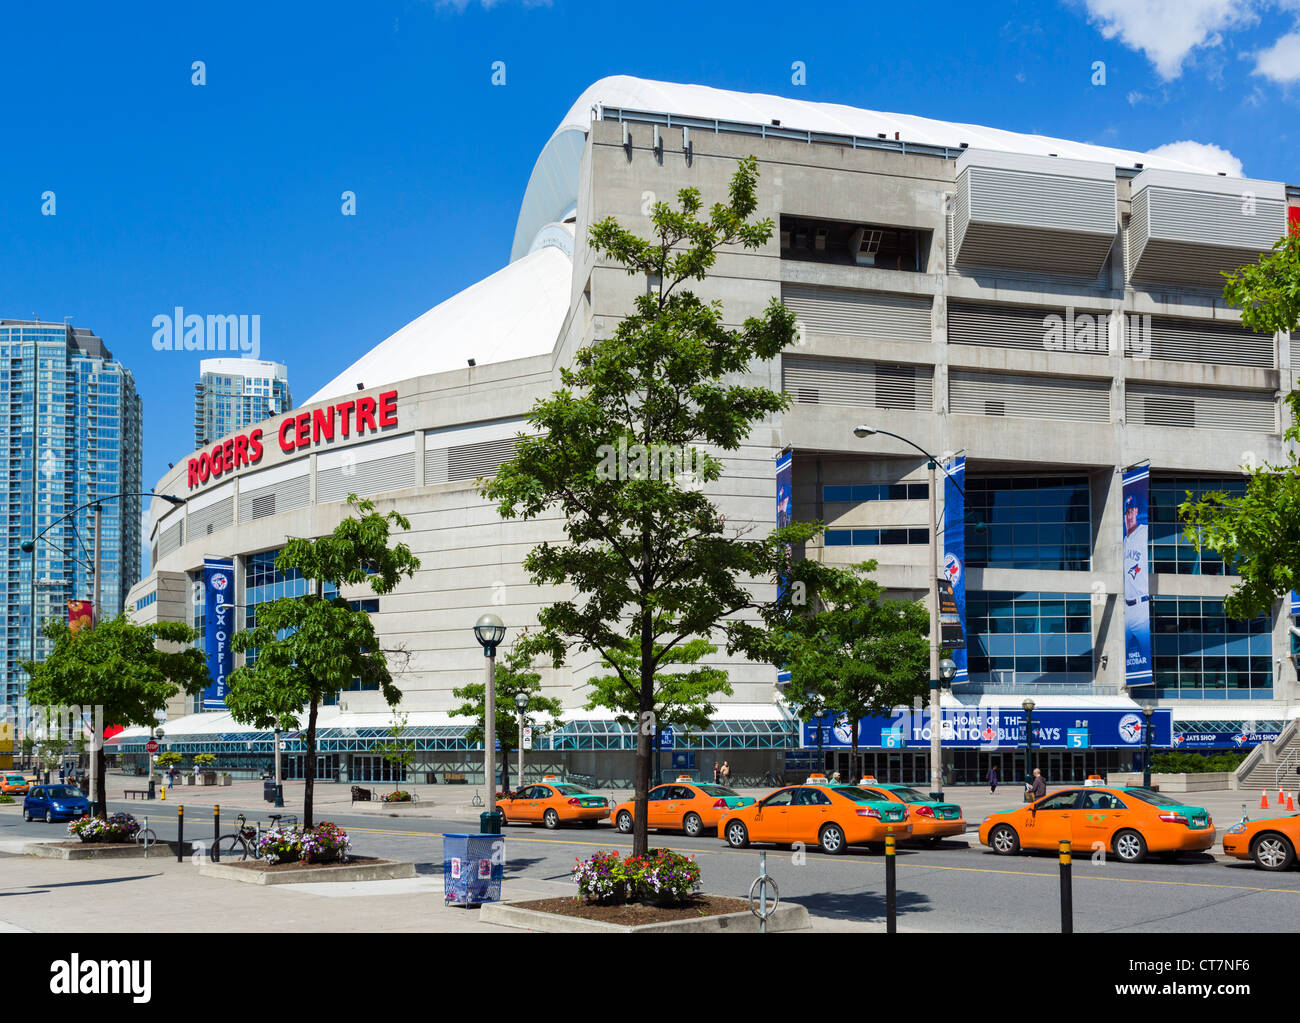 The Rogers Centre Stadium (formerly the SkyDome), Toronto, Ontario, Canada - Stock Image